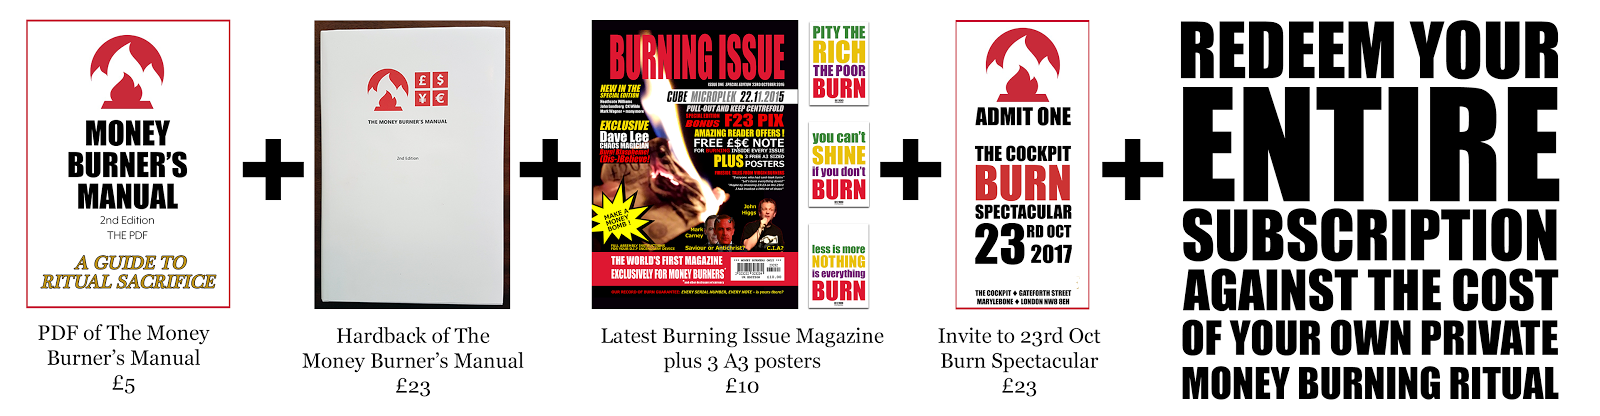 Subscribe to Contribute £23 per month and you get: